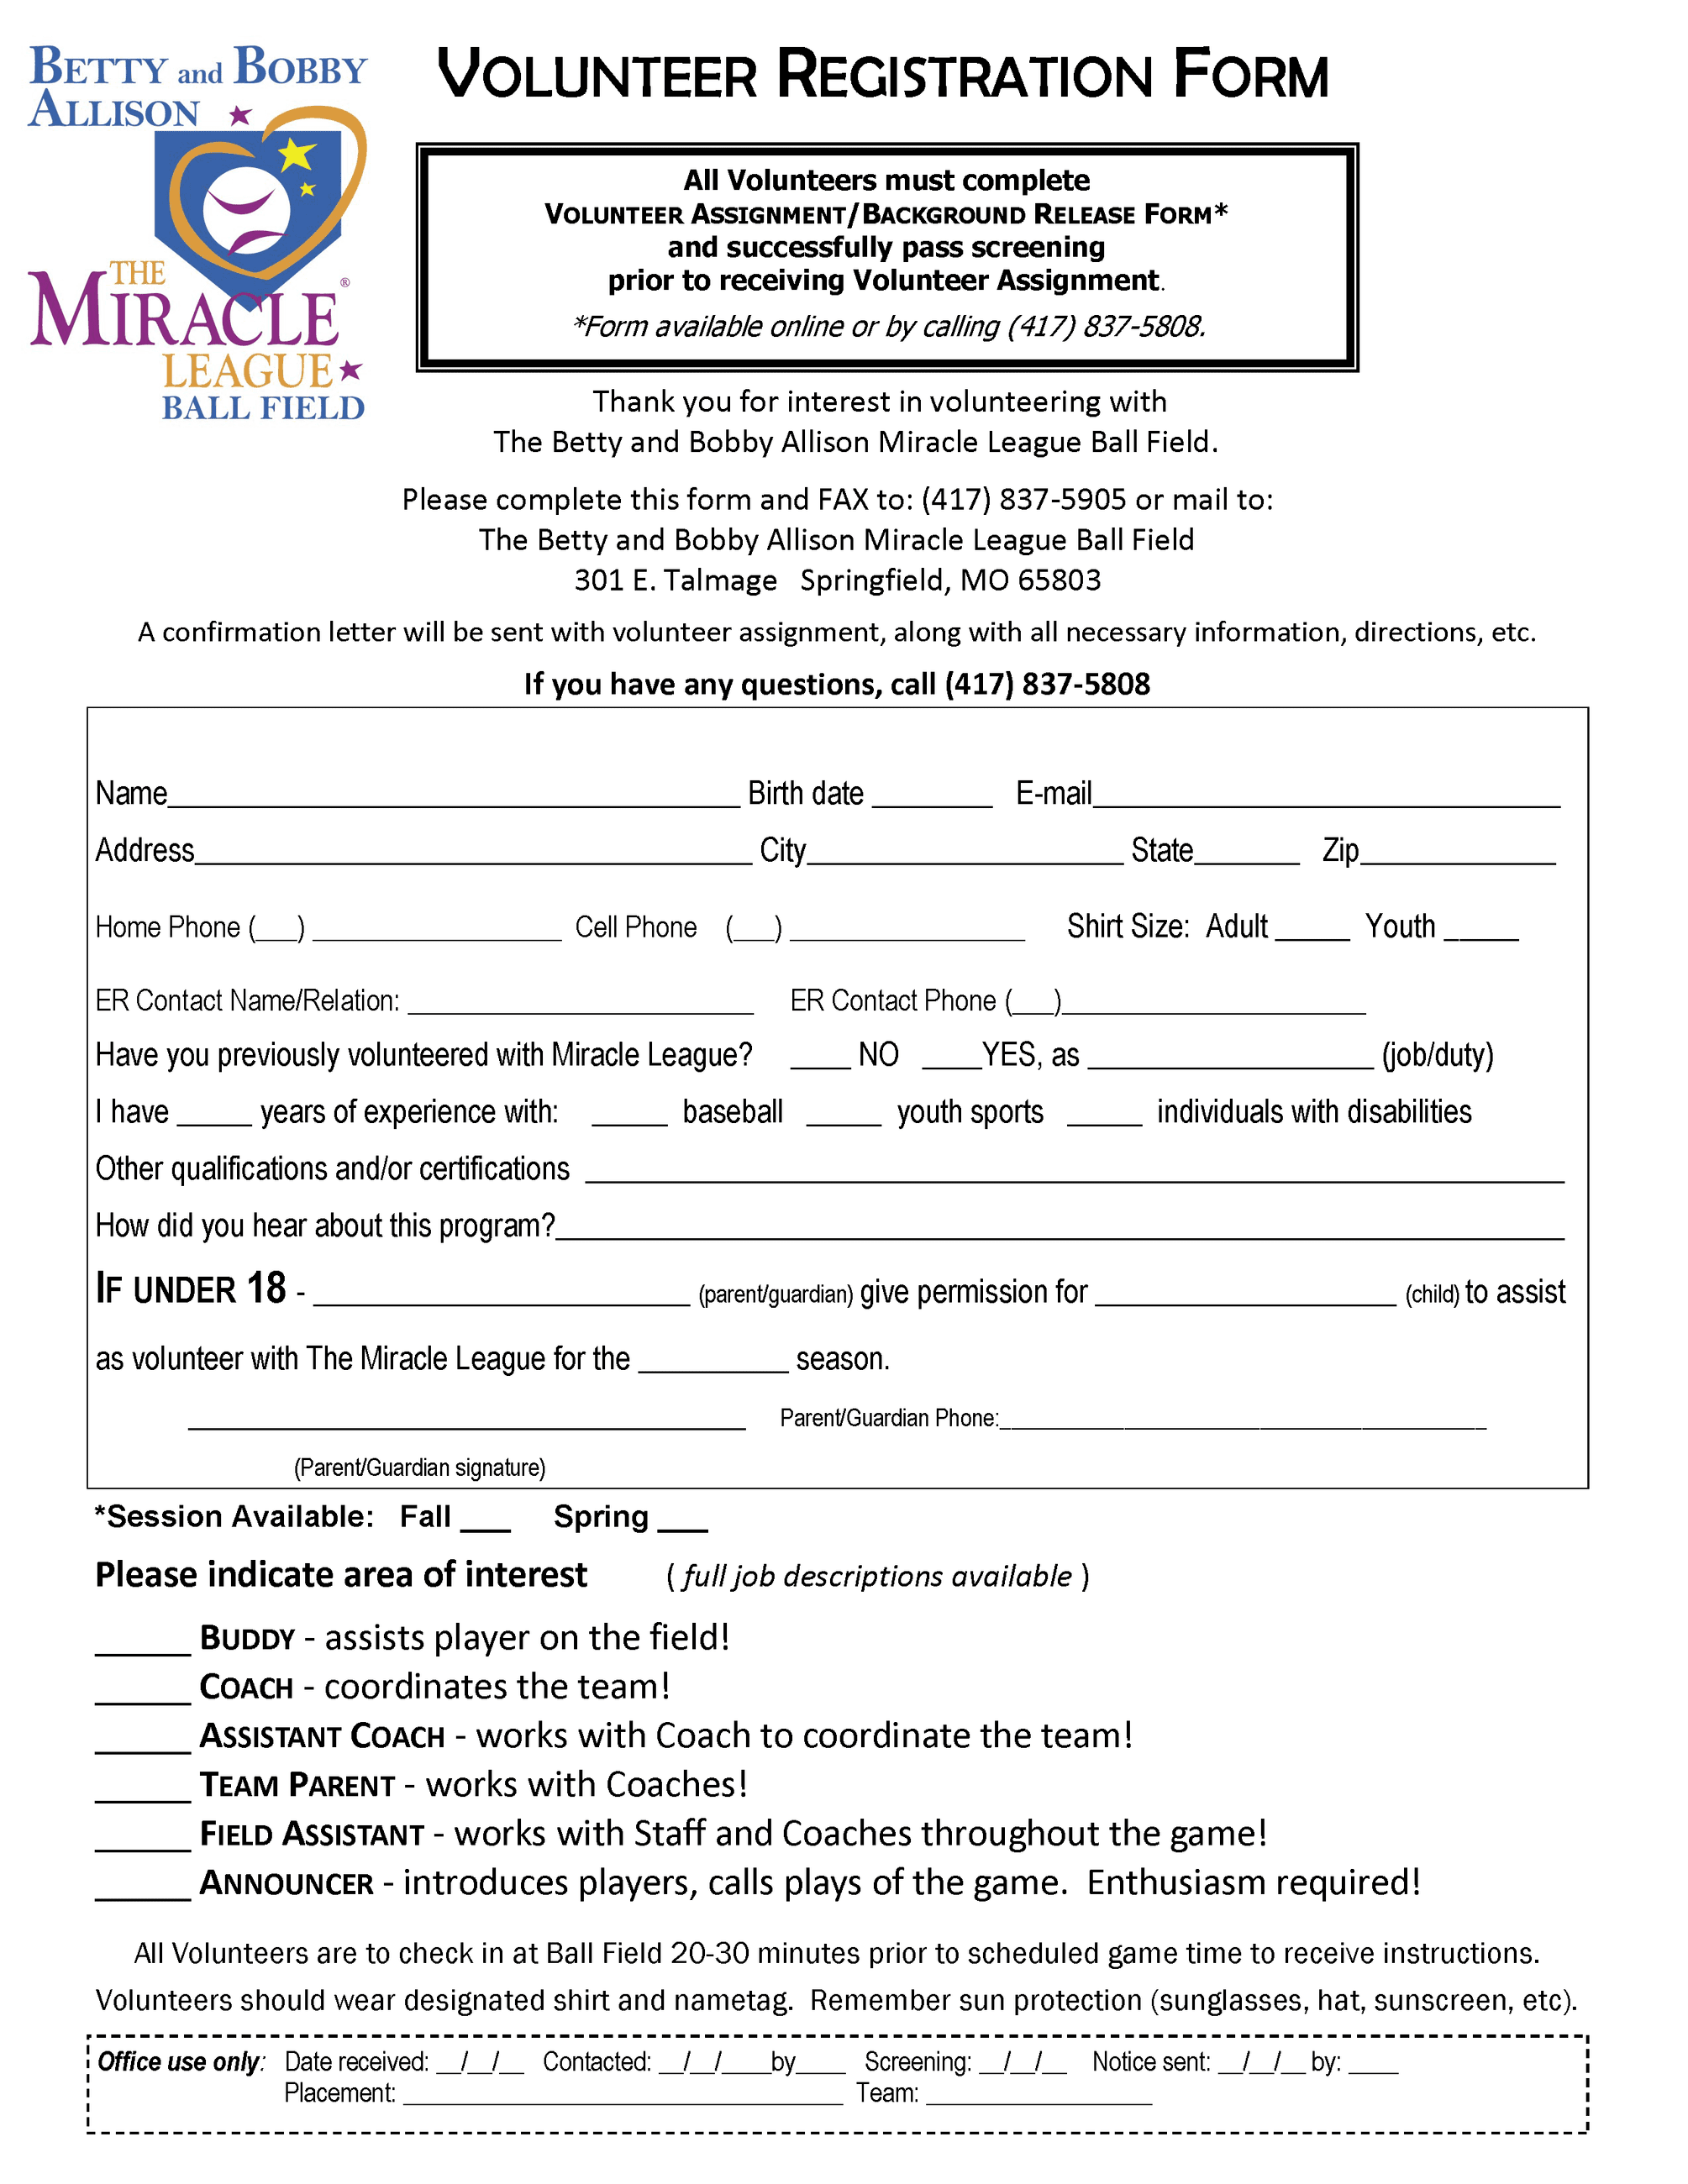 Volunteer Registration Form_201607281822099951